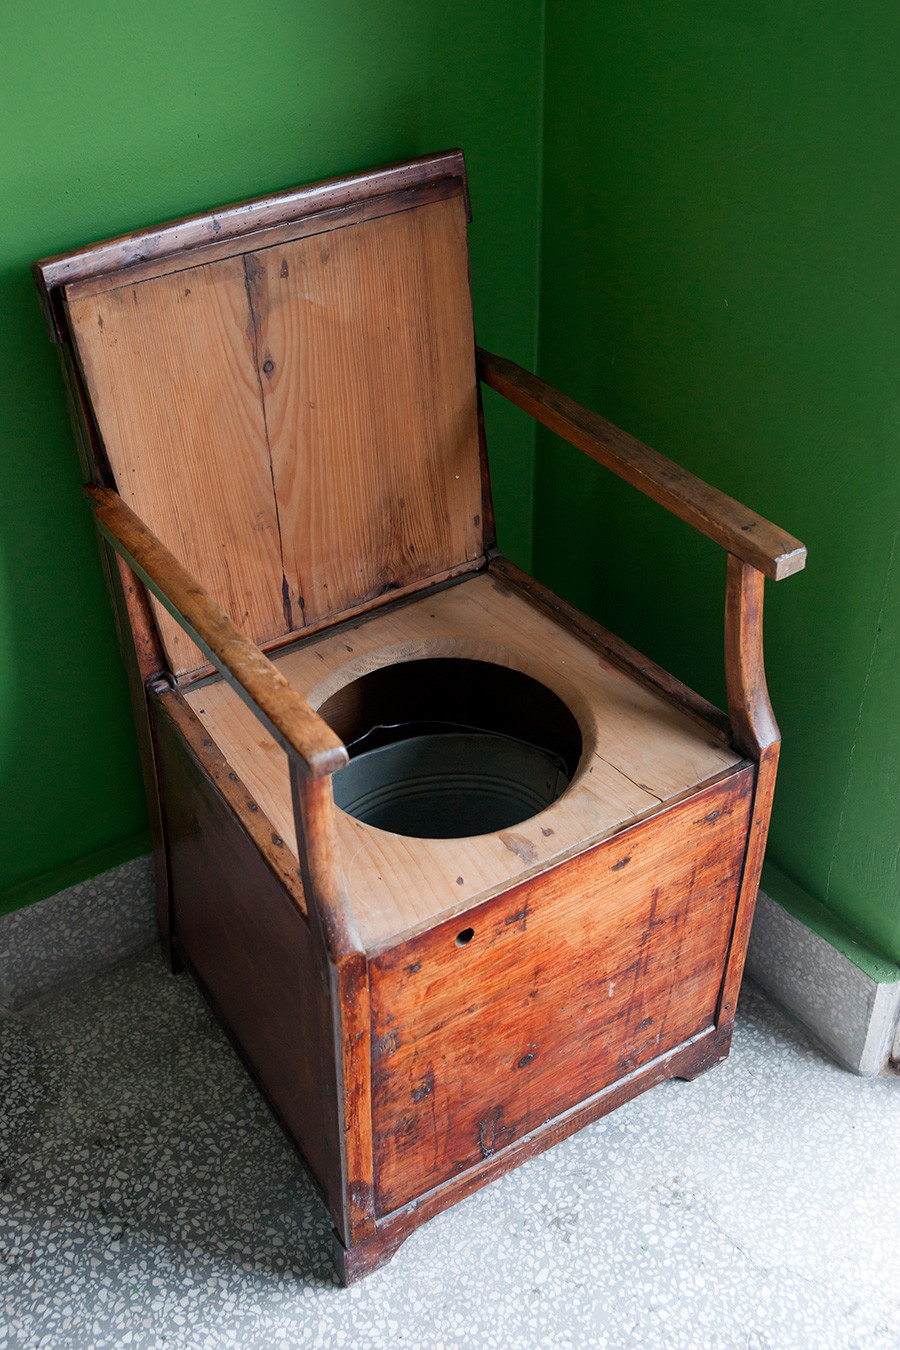 Vintage toilet made of wooden armchair and bucket.